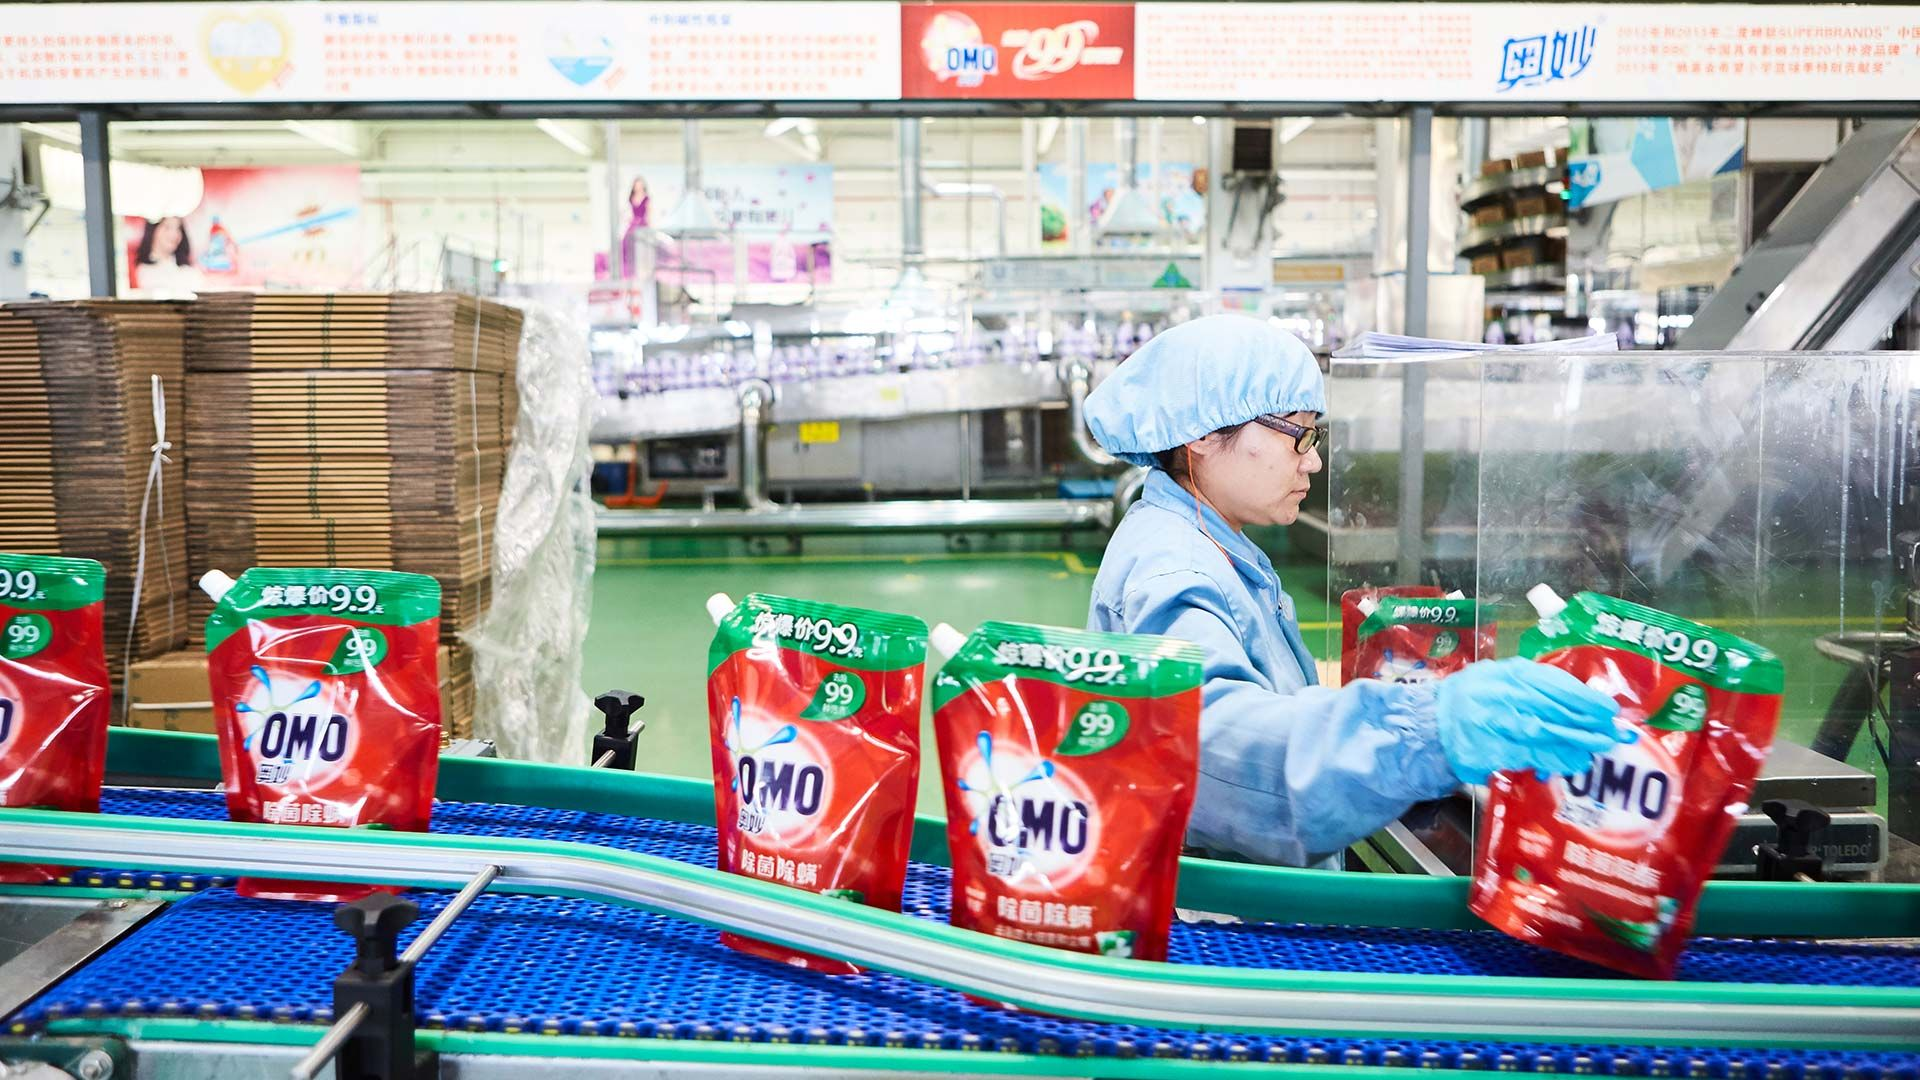 A lady wearing unilever uniform in a factory manning a line producing OMO laundry detergent